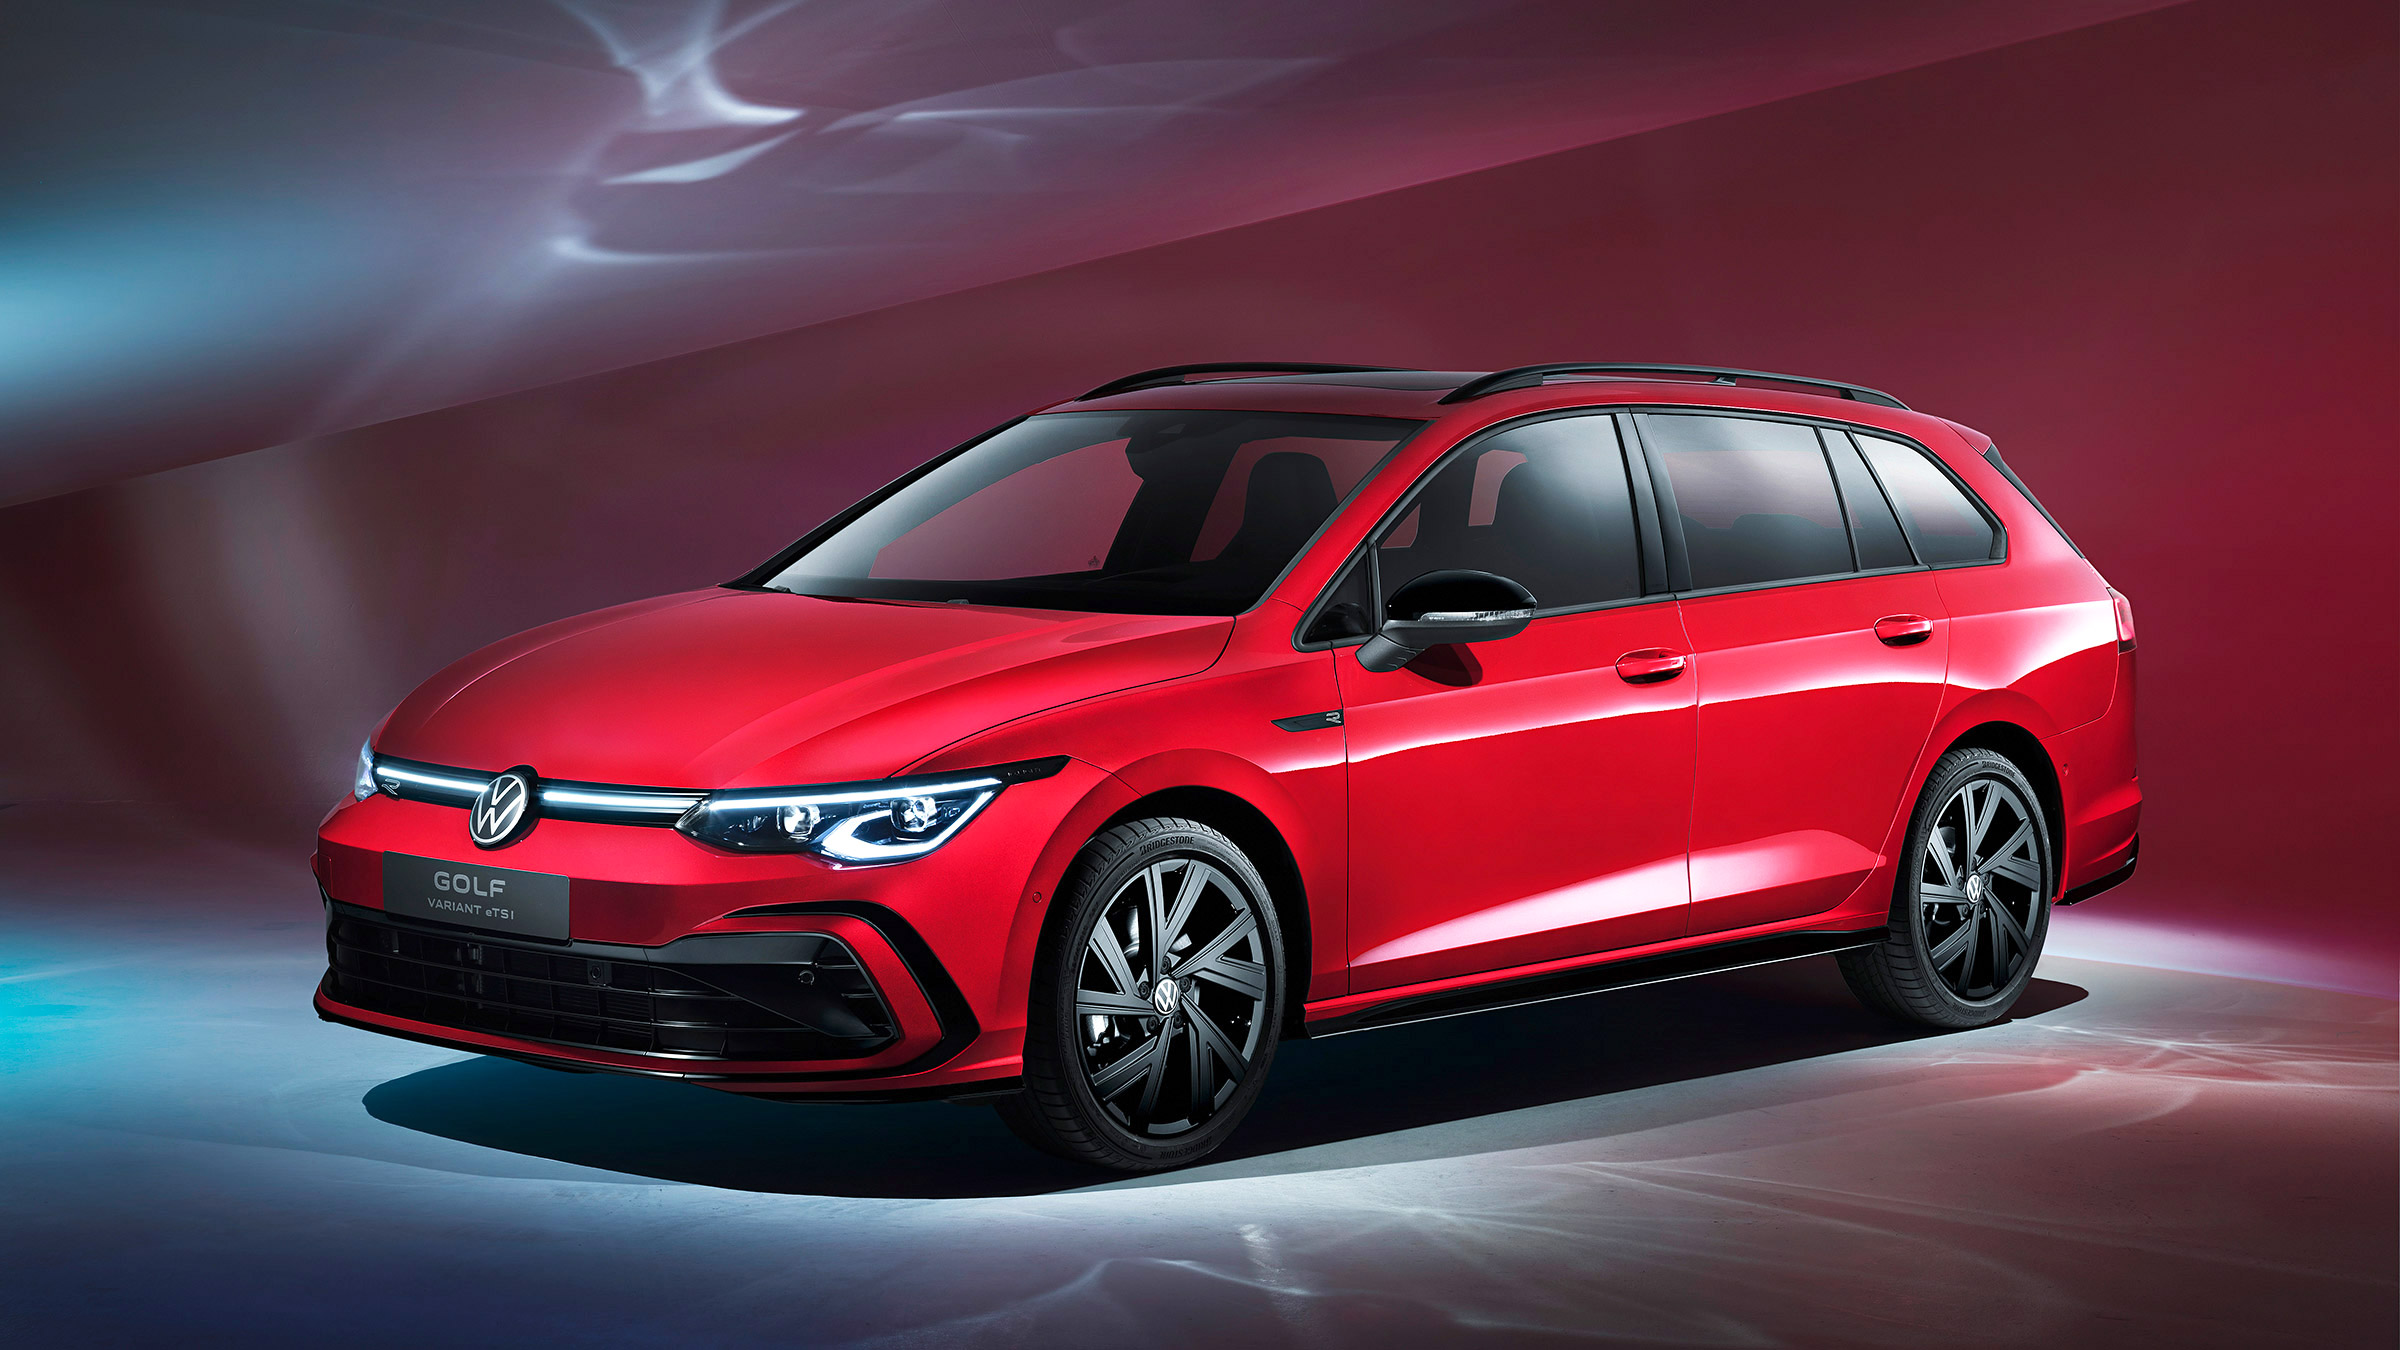 New 2020 Volkswagen Golf Estate boosts practicality | Auto ...